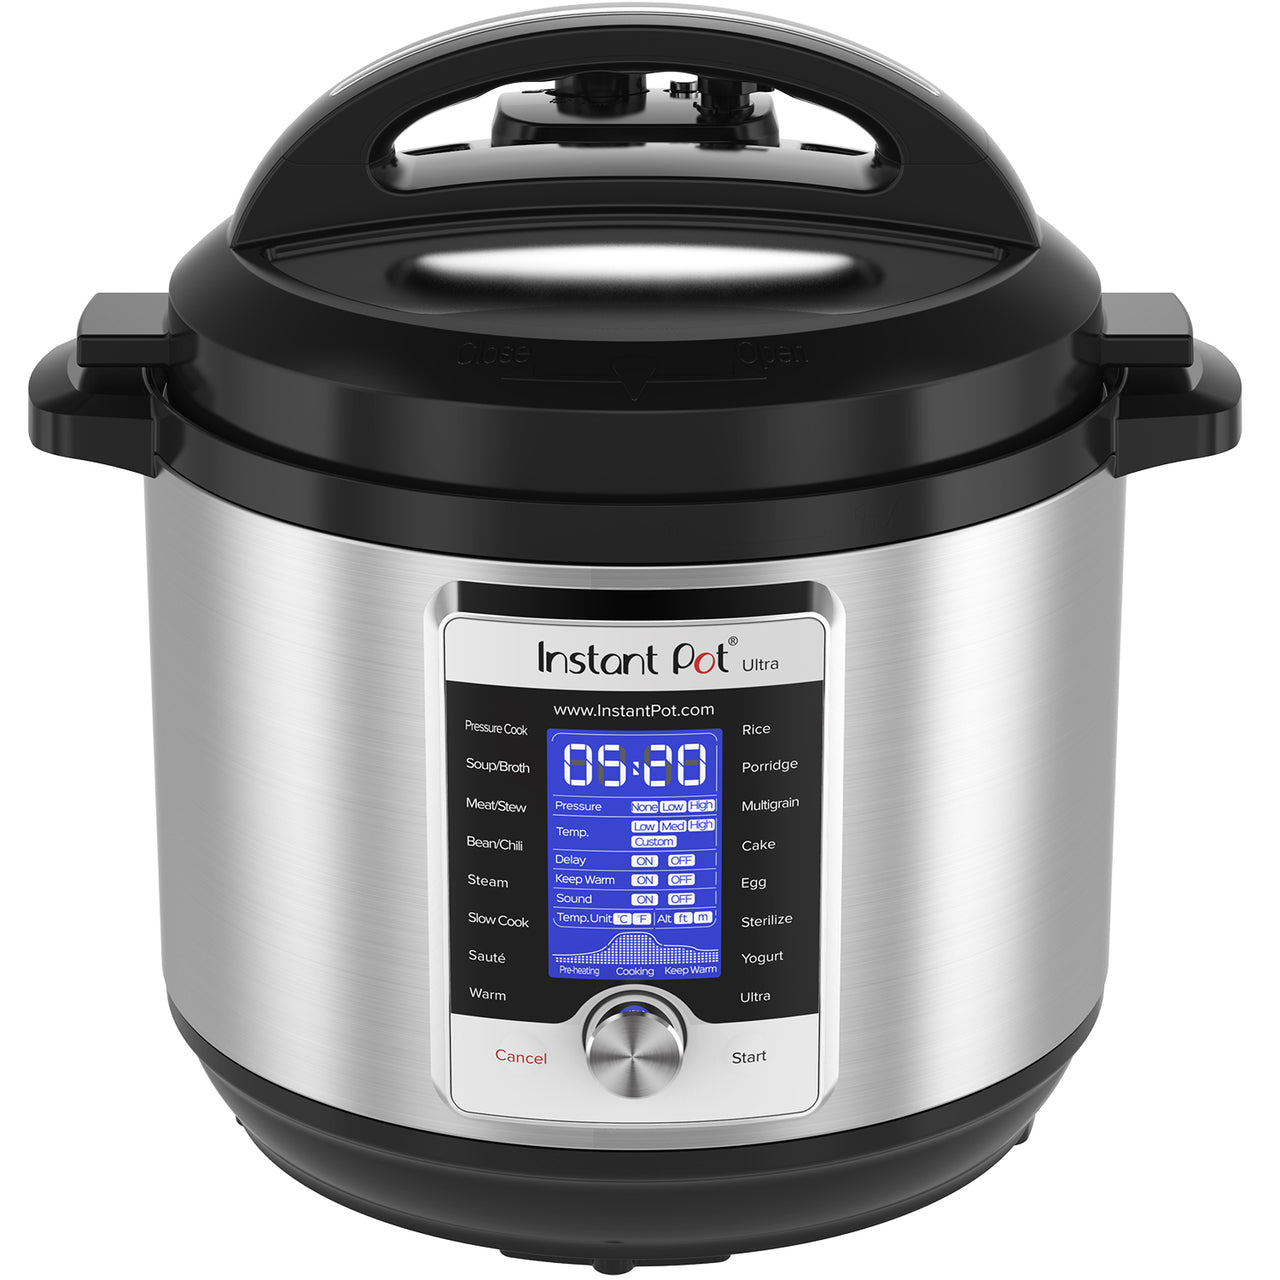 Ultra 10-in-1 (8 Quart)